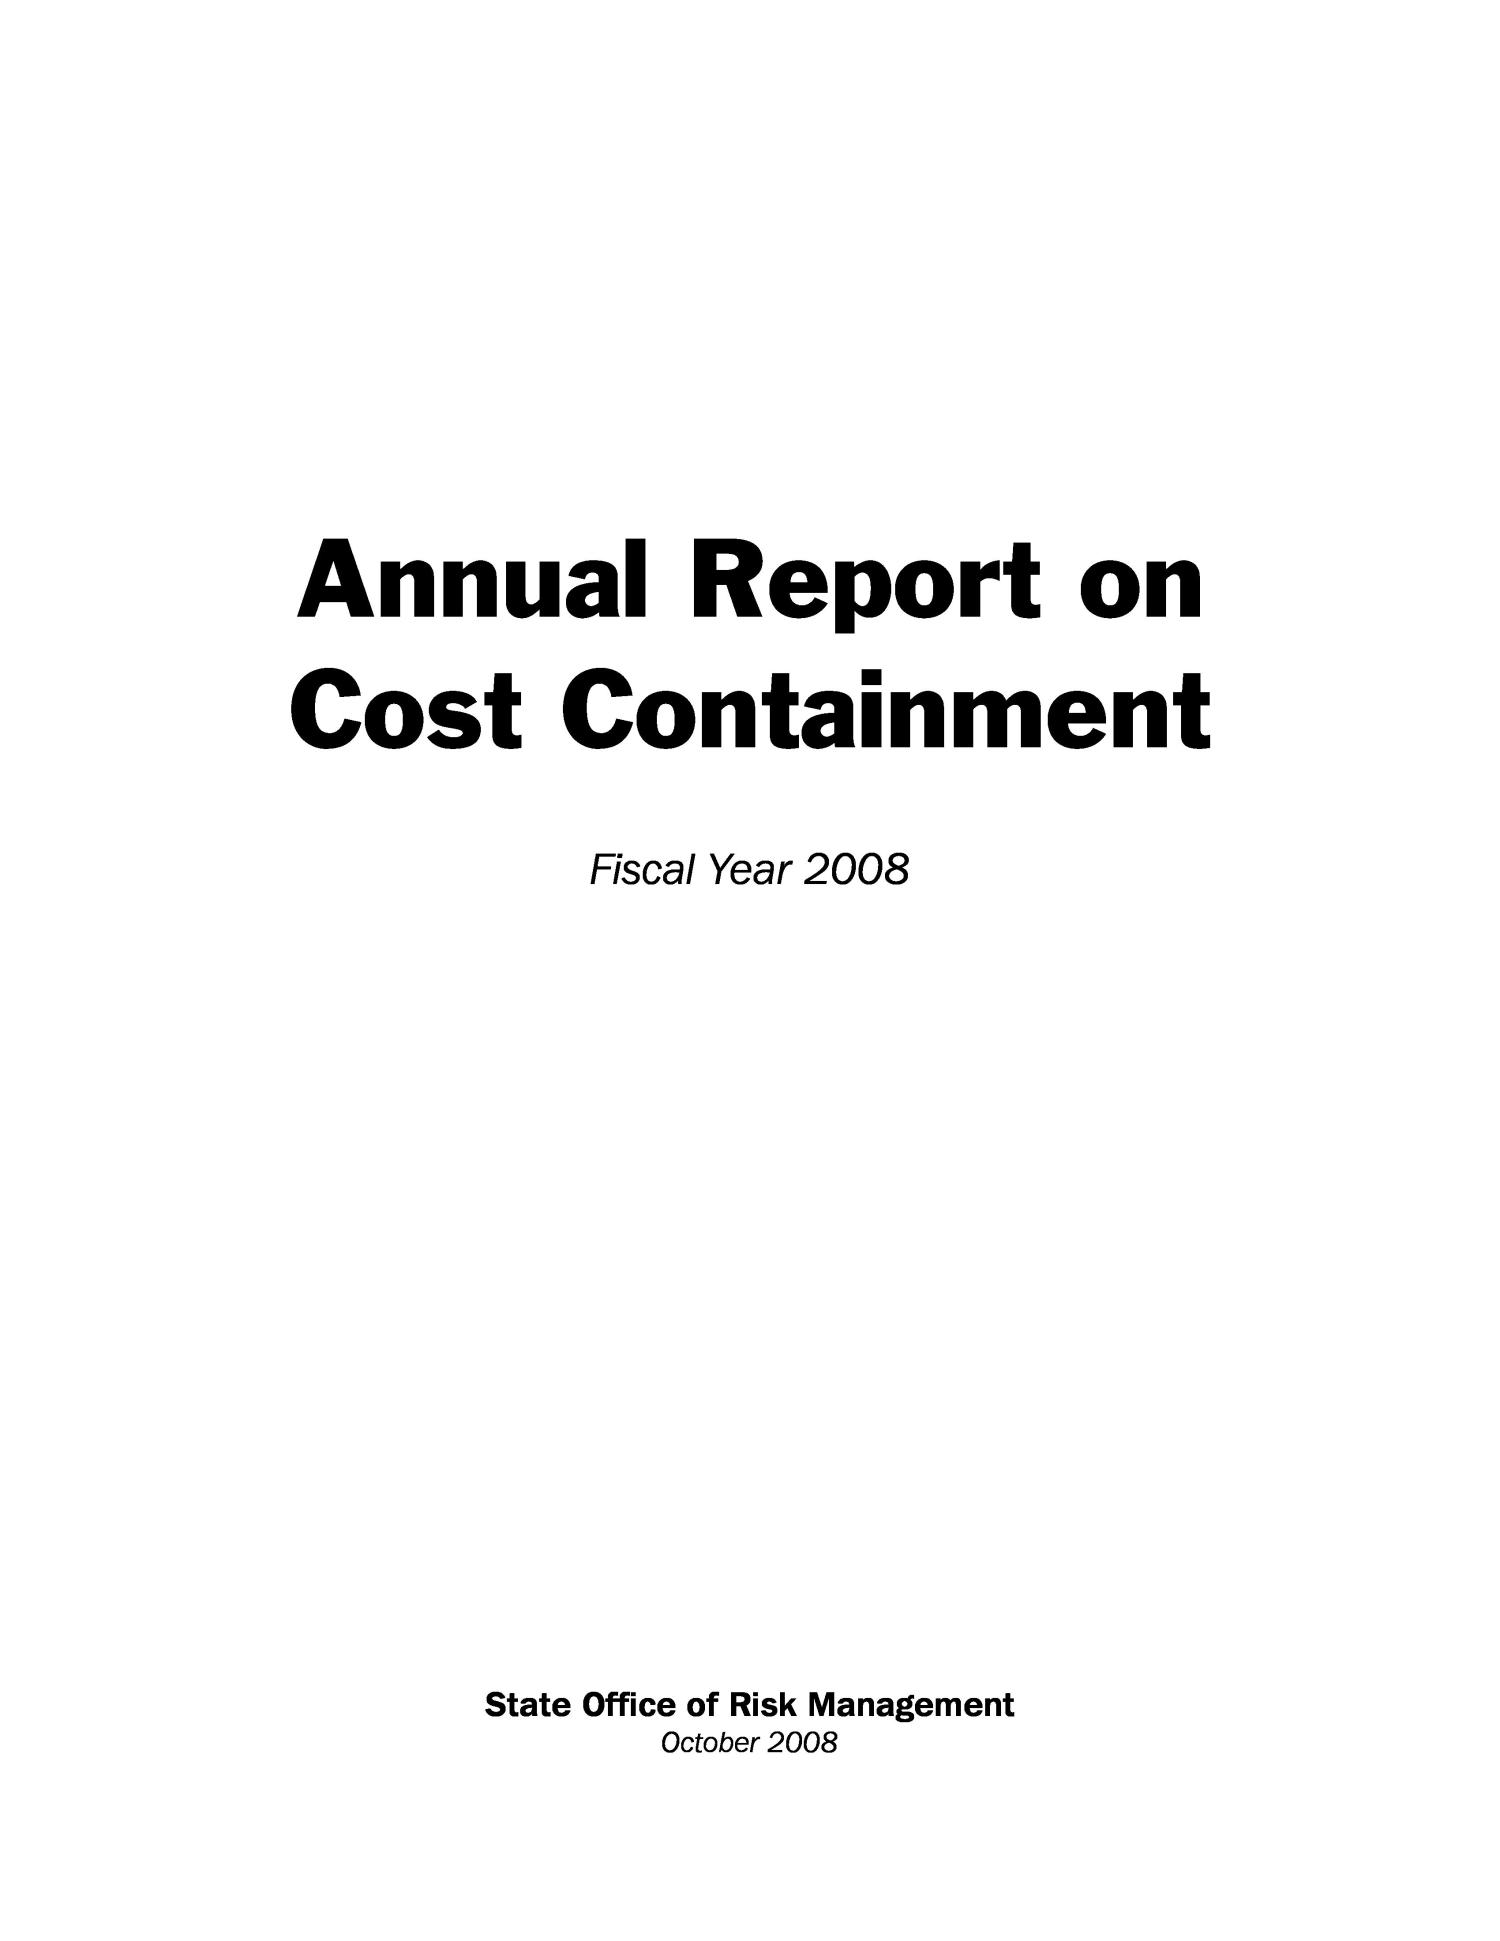 Texas State Office of Risk Management Annual Report on Cost Containment: 2008                                                                                                      Front Cover